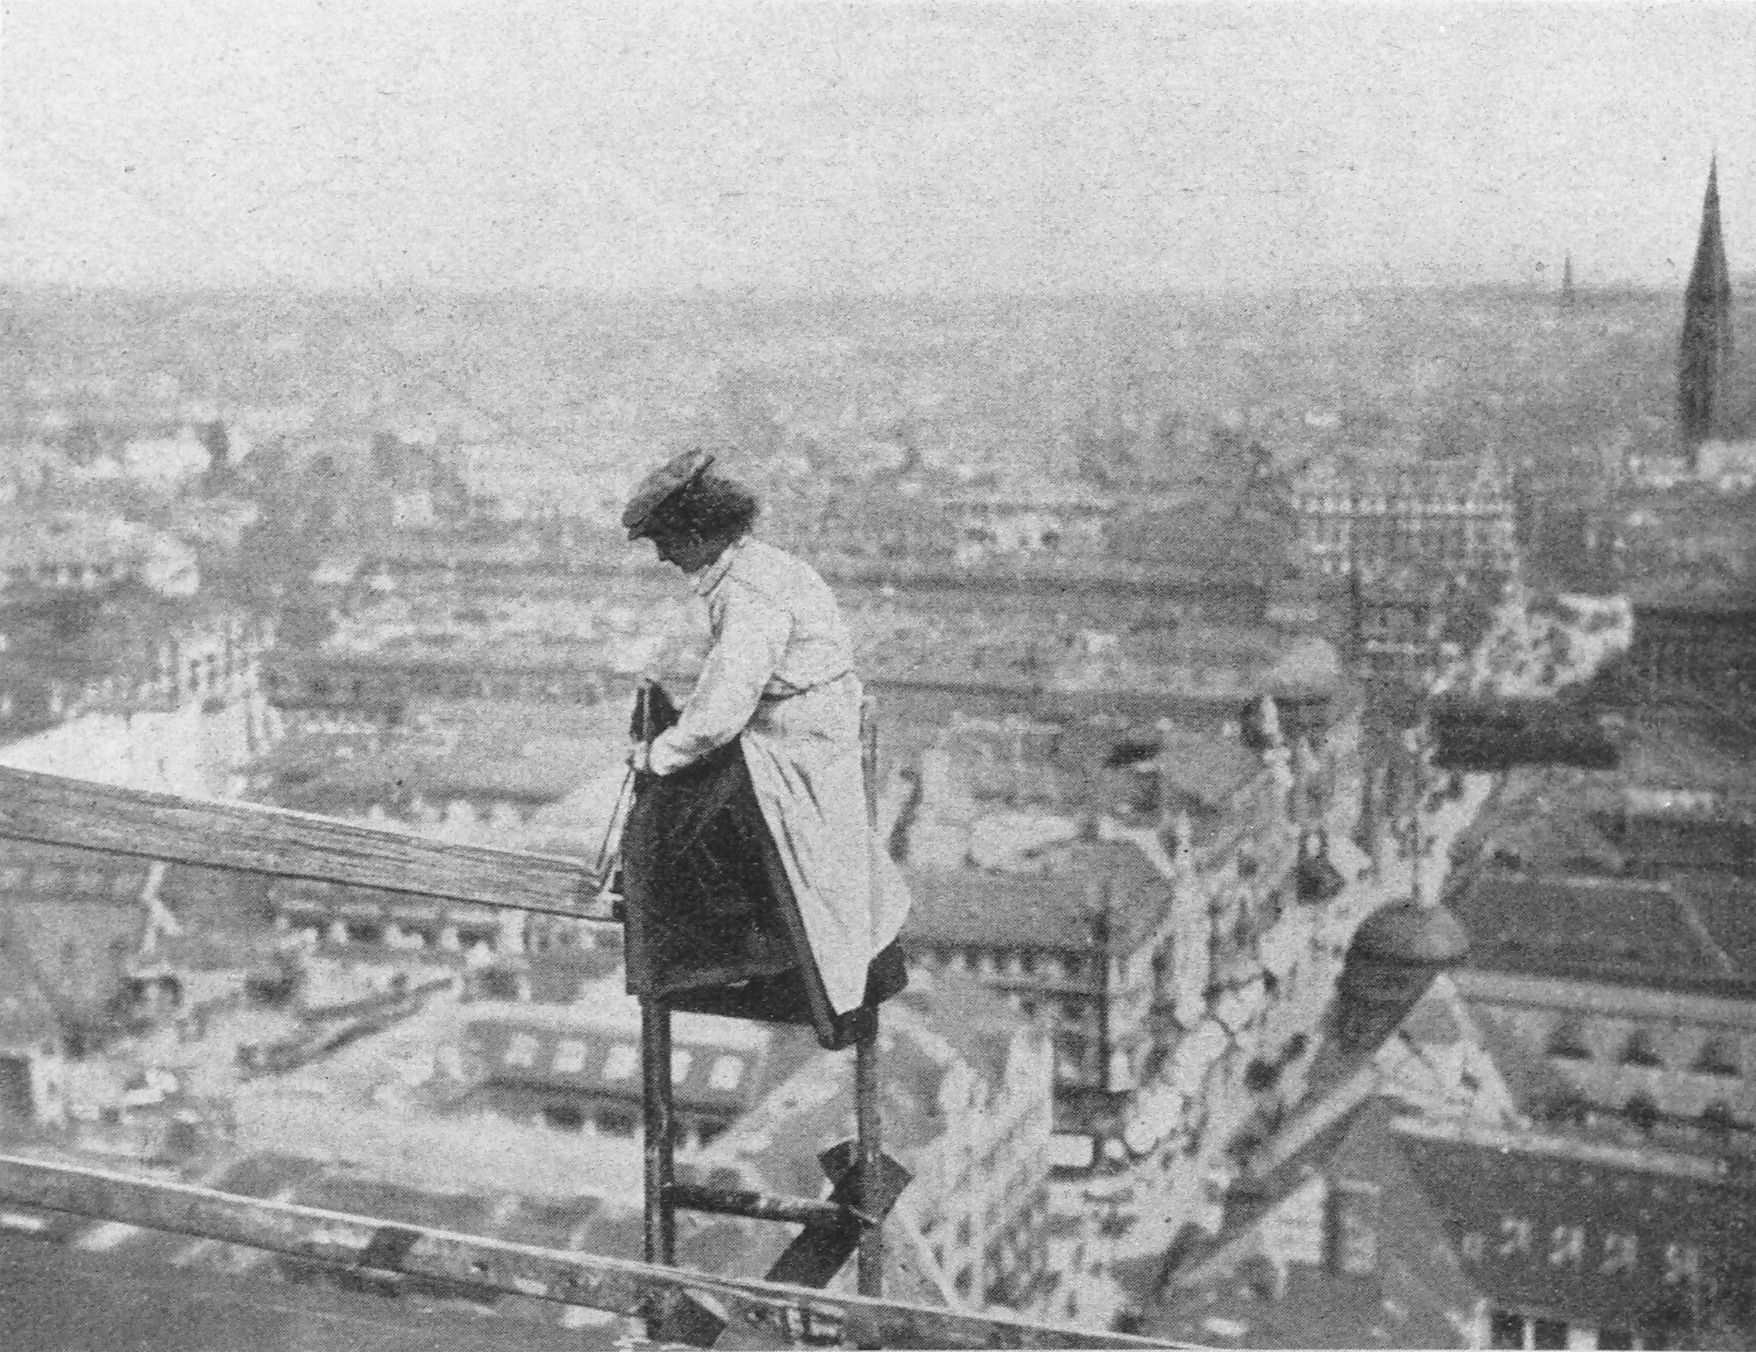 Recalling Fay Kellogg in New York City, a female builder in Berlin shows off her daring to the press. She is pictured making repairs to the roof of Berlin's City Hall in 1910